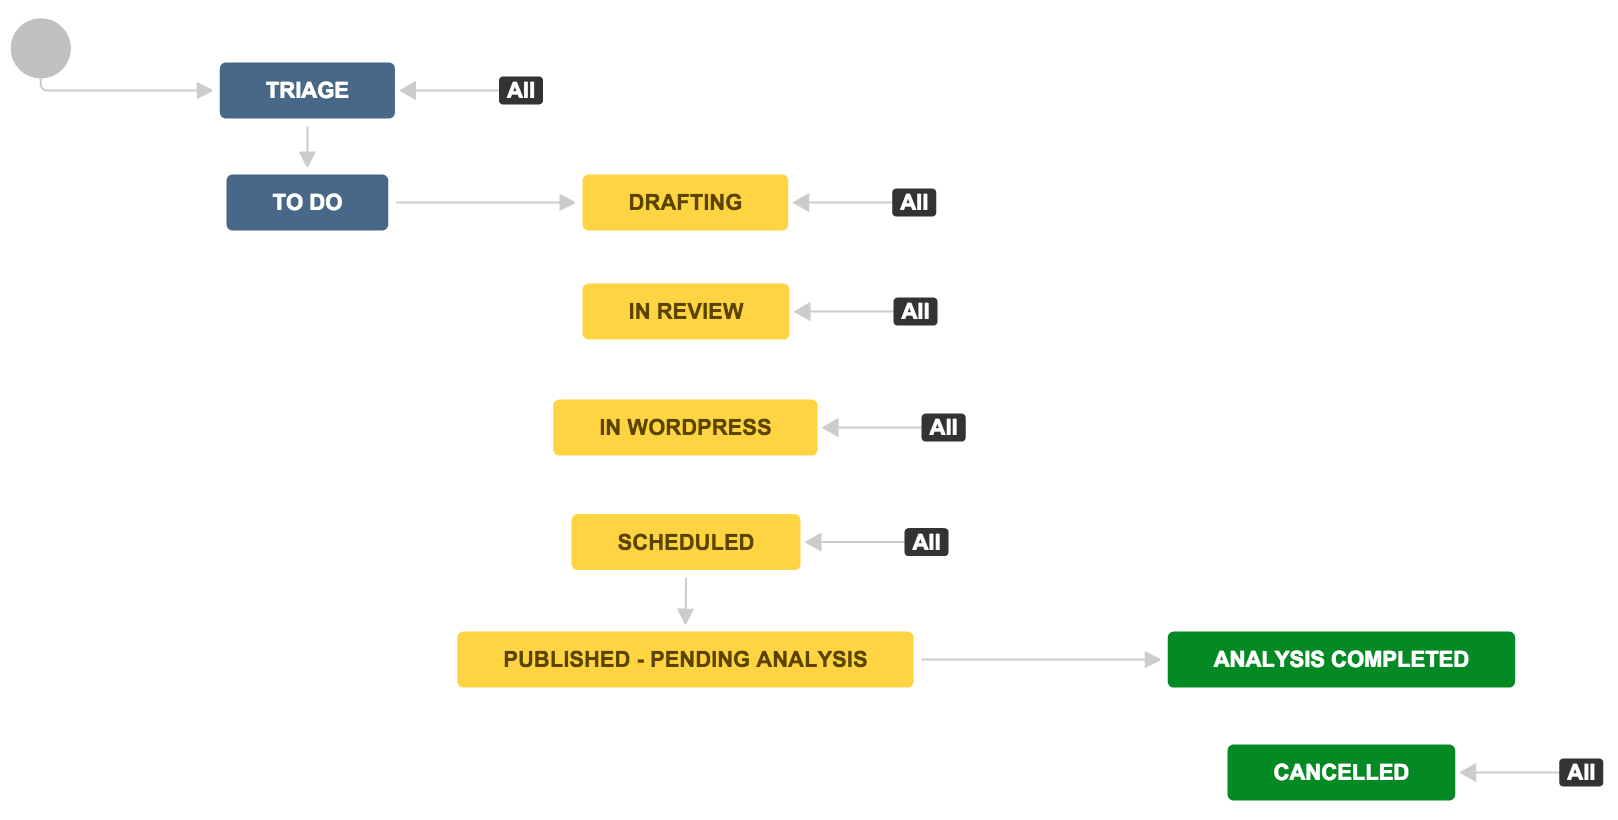 Inside Atlassian Example Jira Workflows For Tracking Blog Projects Blogging Rules Blog Topics Blogging Keywords